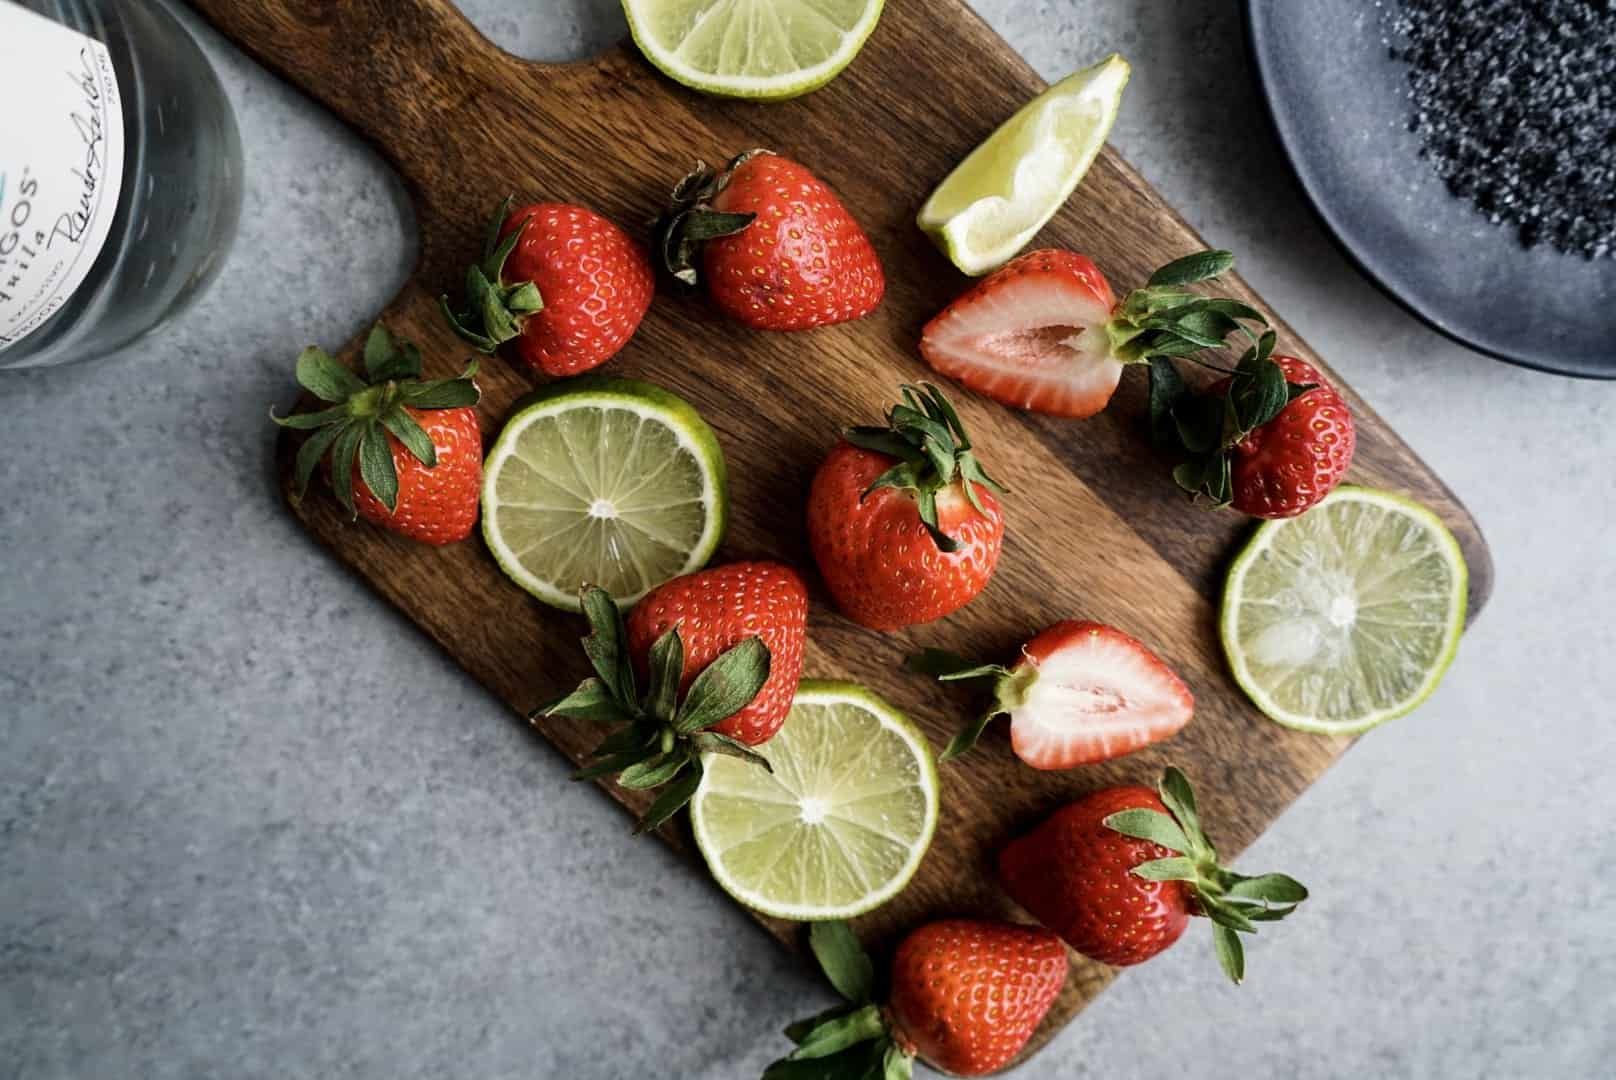 fresh strawberries and limes